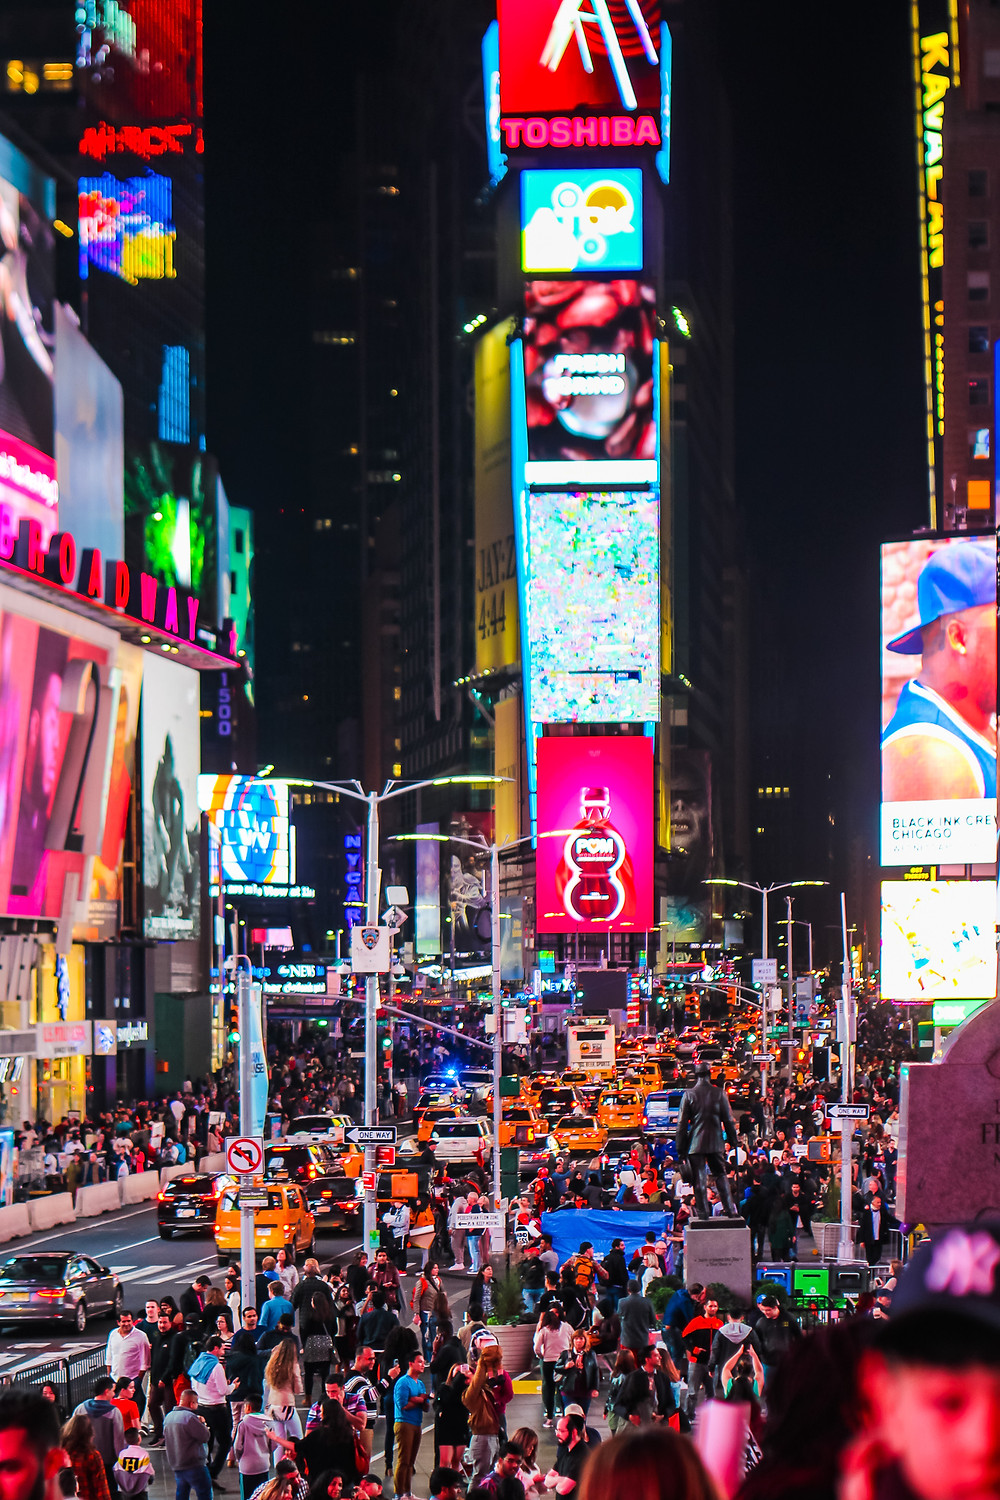 Things to do in Times Square, Times Square, Manhattan, New York, nyc, yellow cab, night life